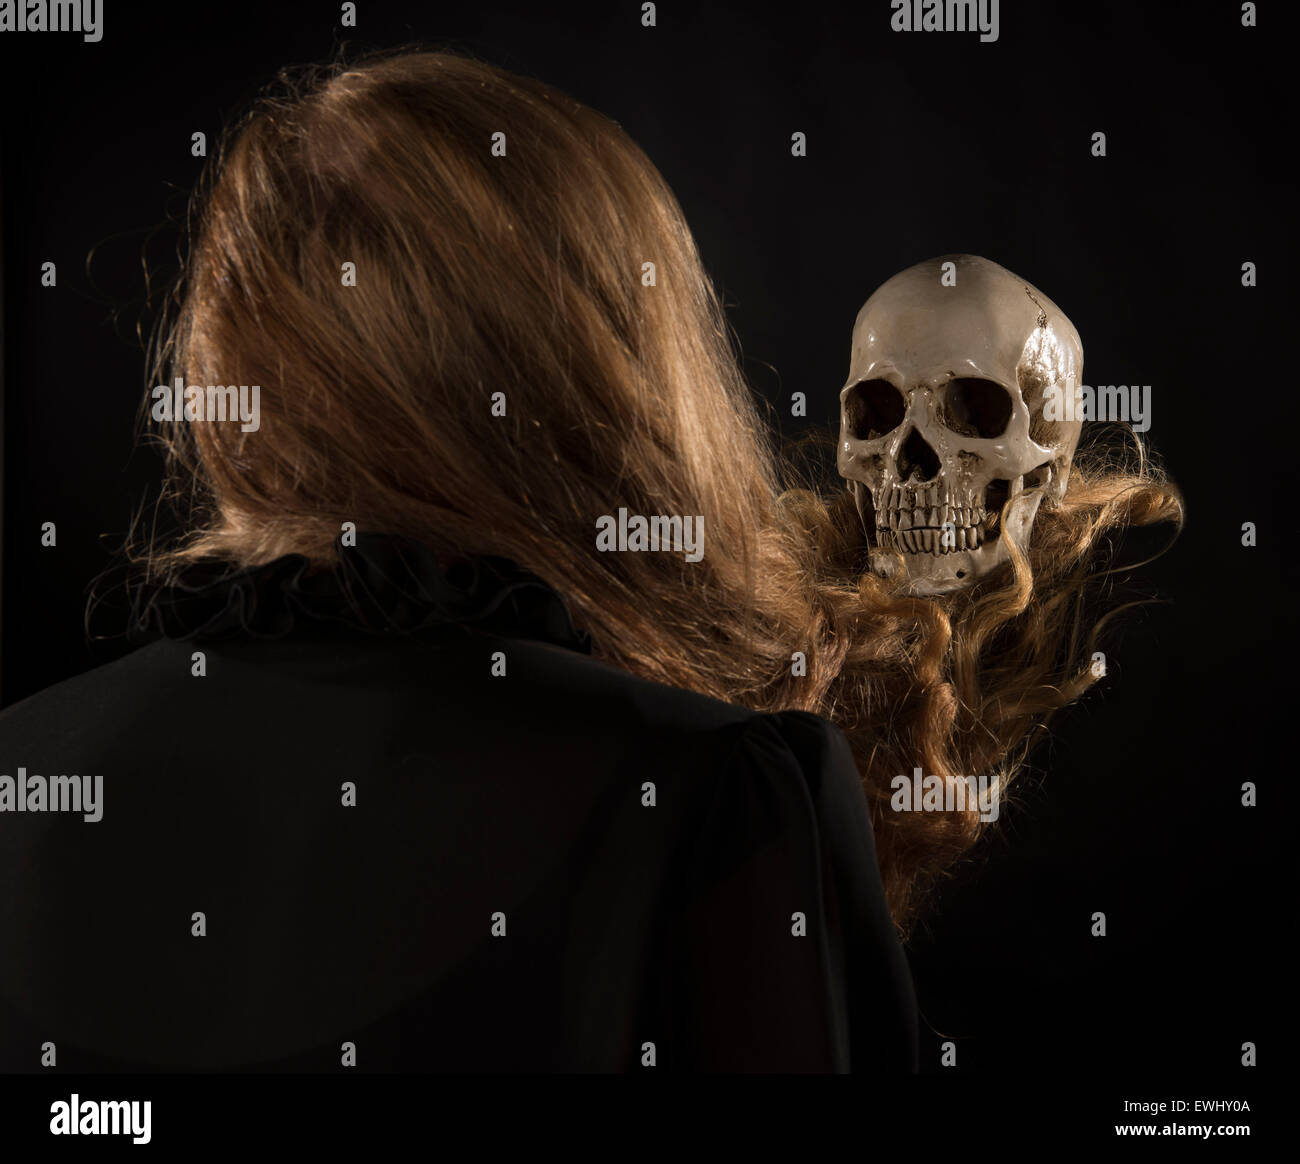 Woman with Blond Hair Holding Skull - Stock Image